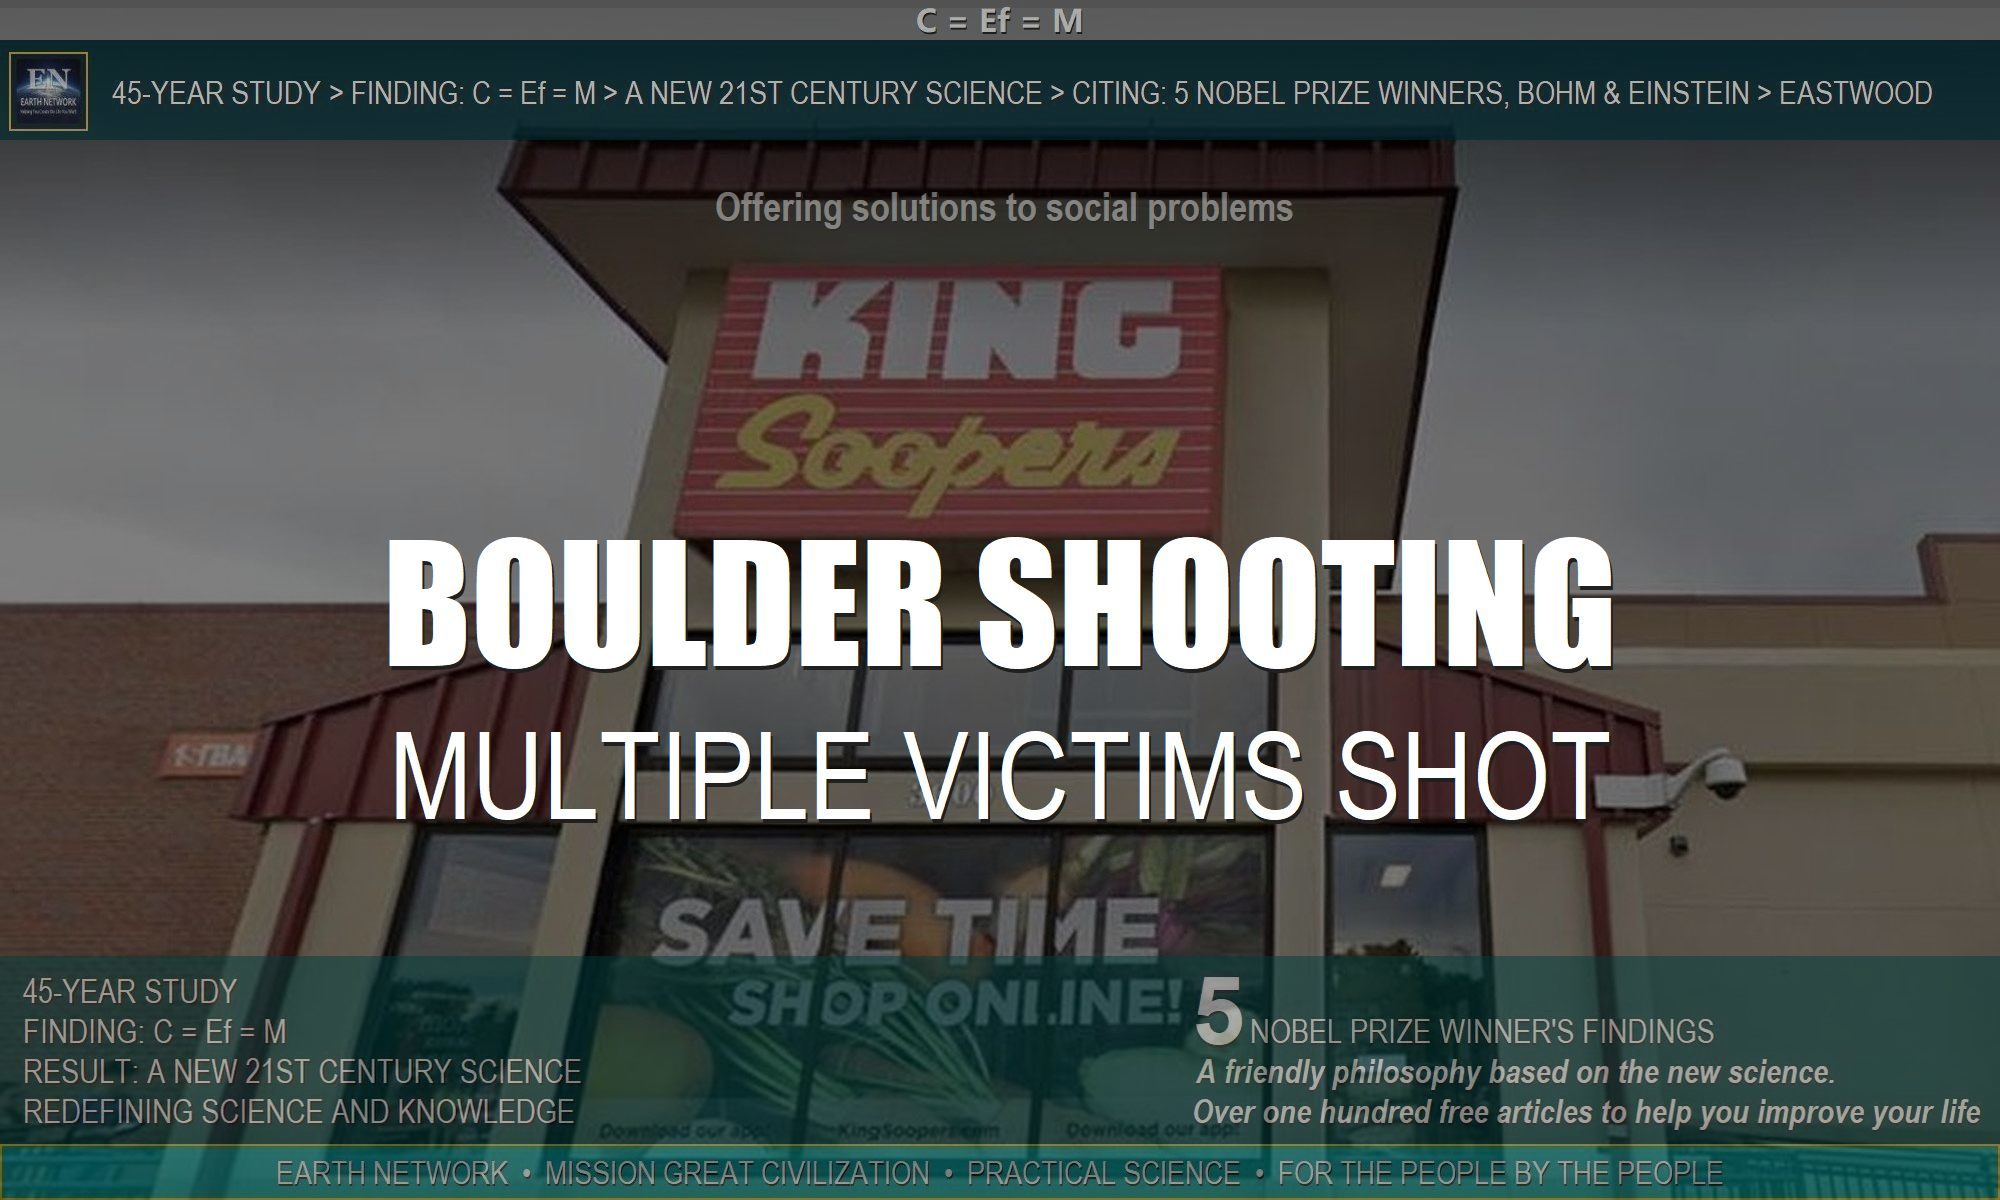 shooter-in-boulder-colorado-supermarket-how-many-people-were-shot-reason